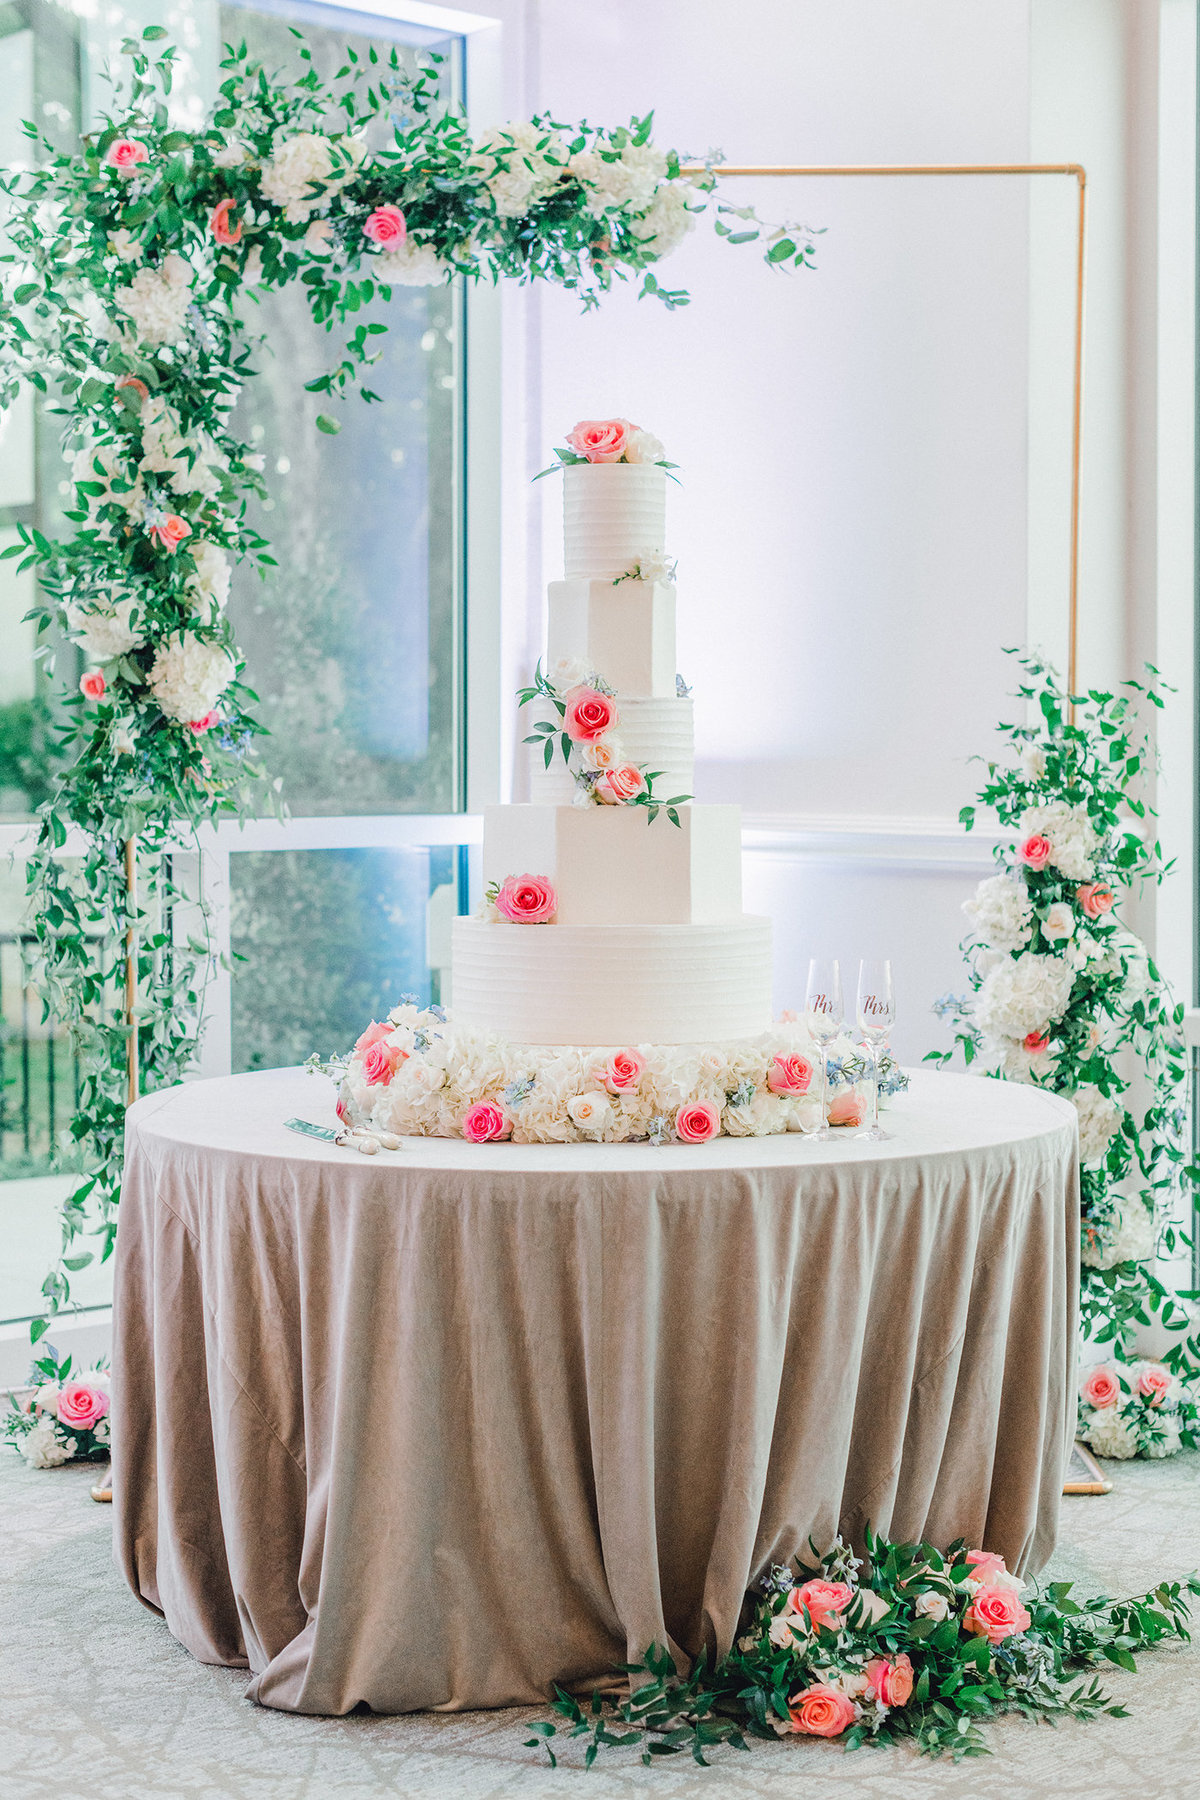 Dallas Wedding Floral Design - A Stylish Soiree - Dallas Wedding Florist - 469